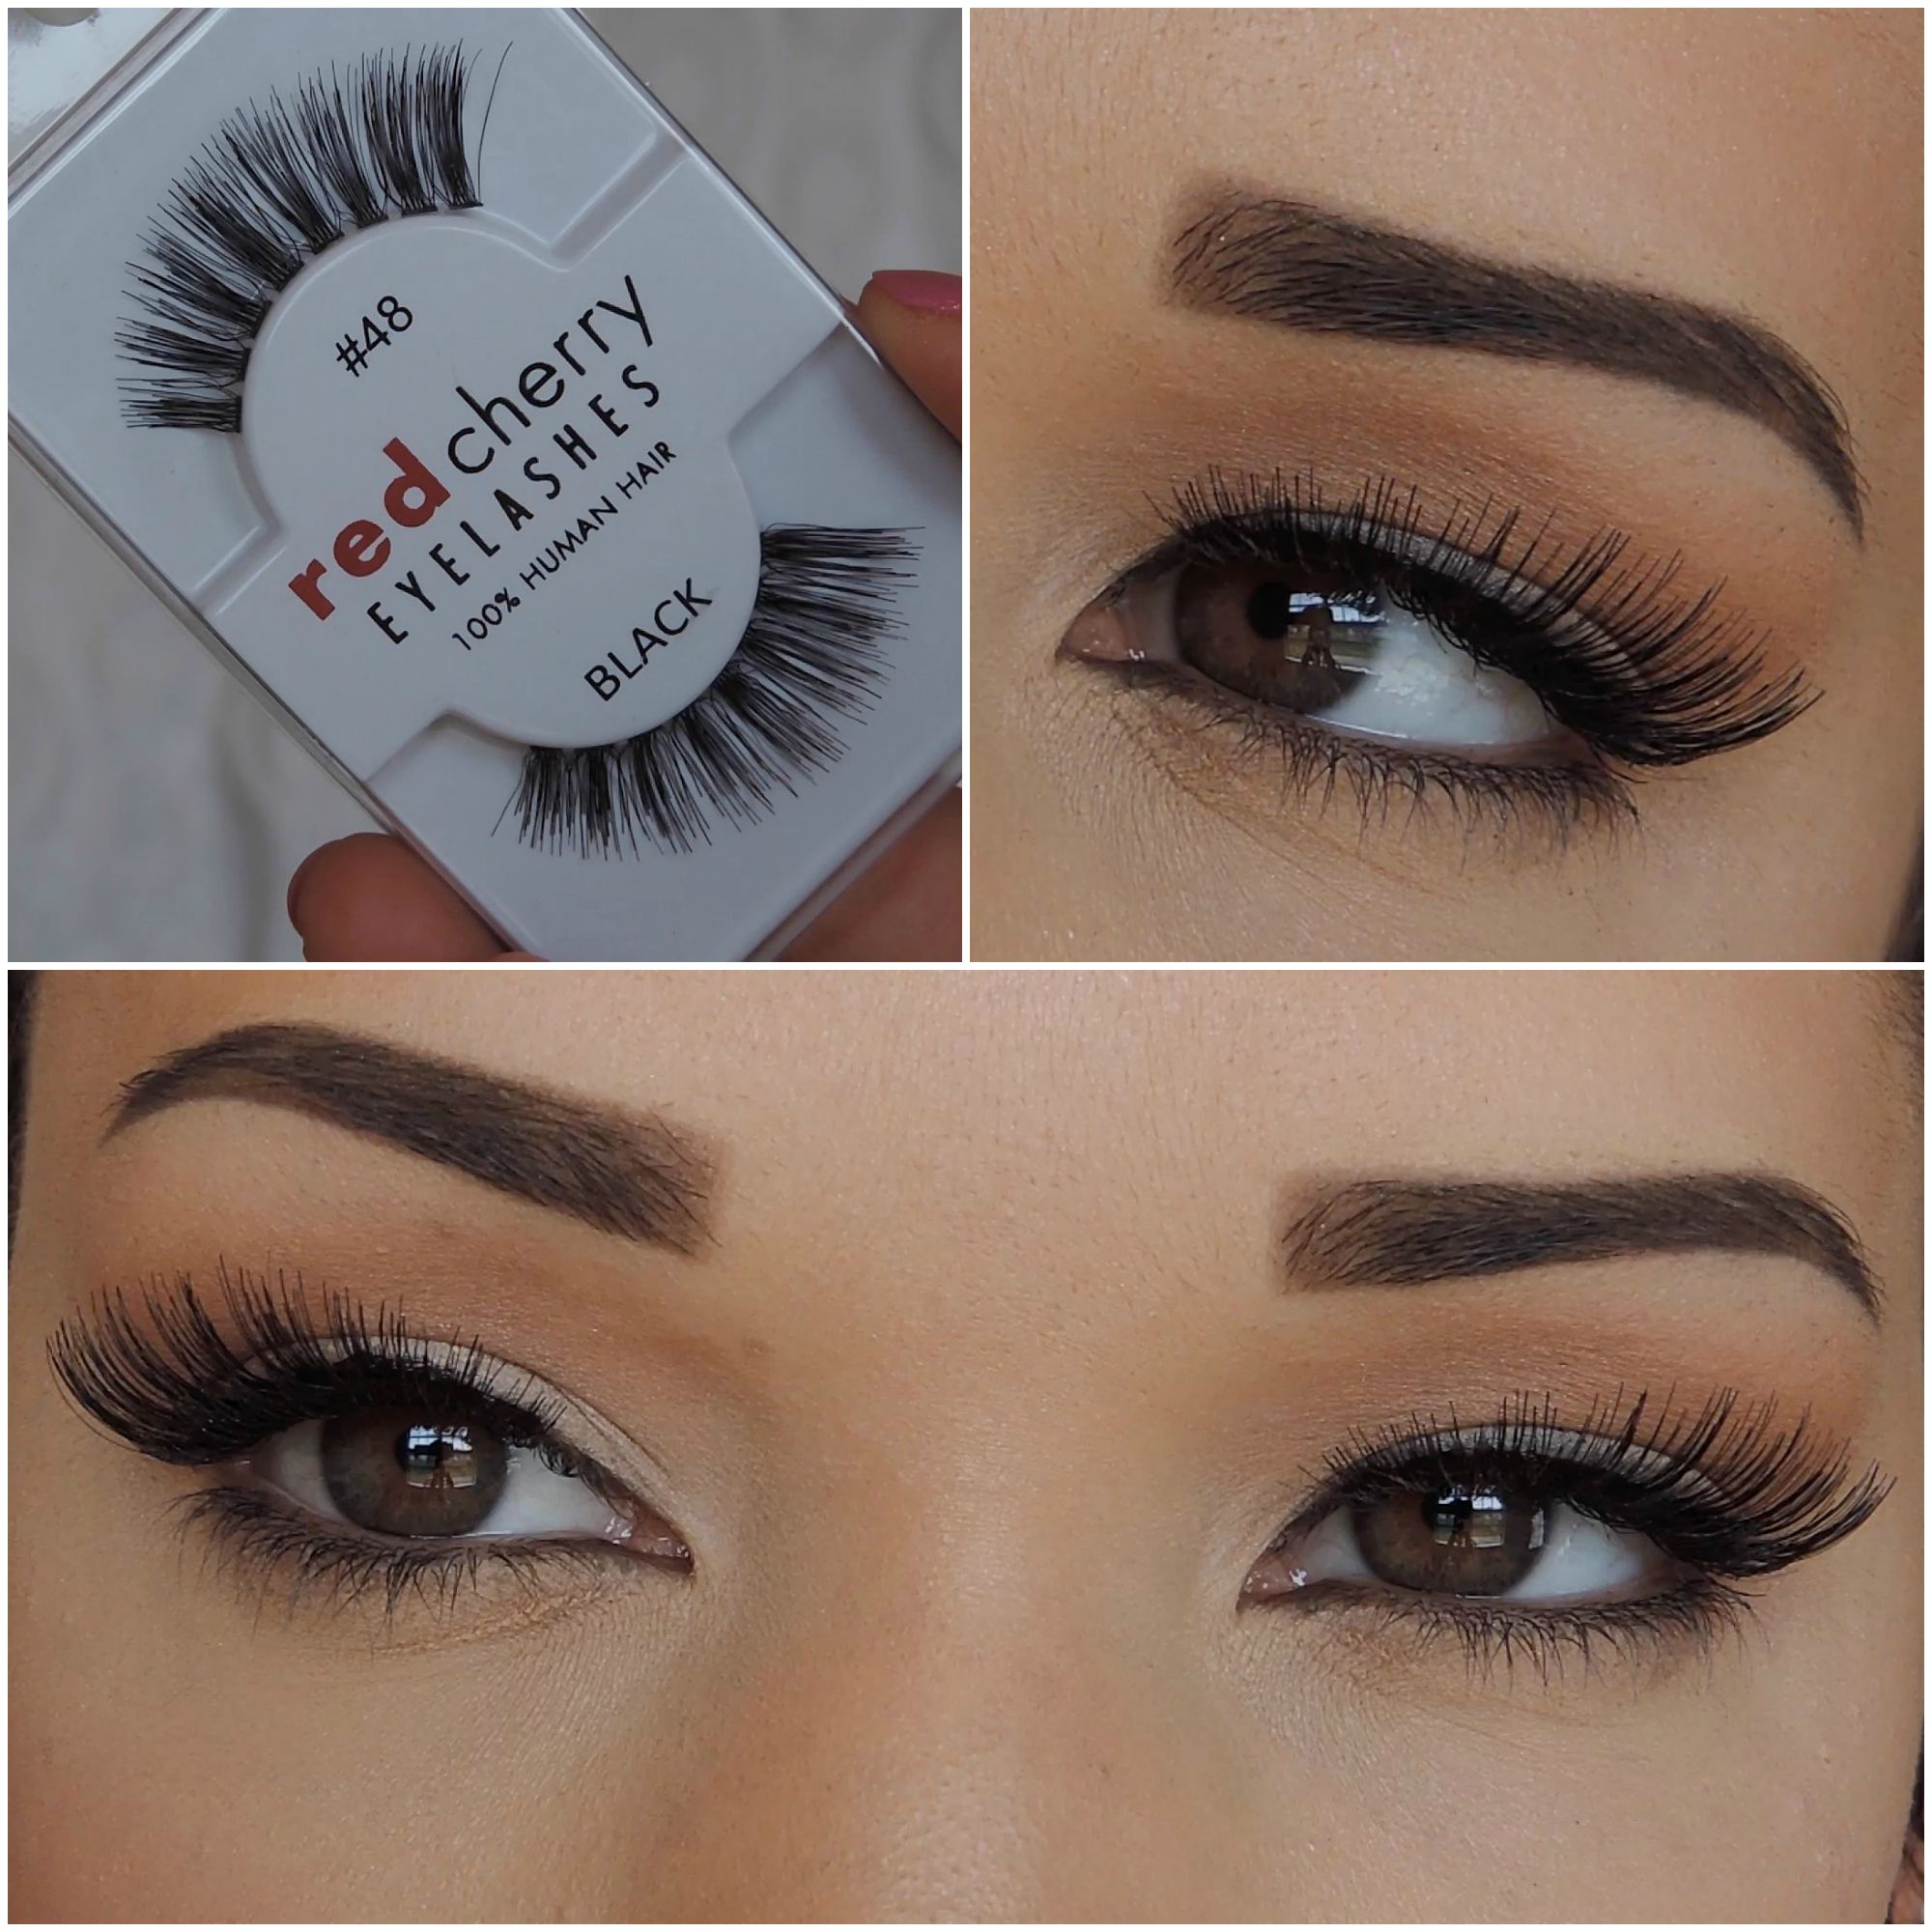 2c5a6f6be6d Red Cherry Lashes | #48 - Darla | BeautyByCMW | Red cherry lashes ...